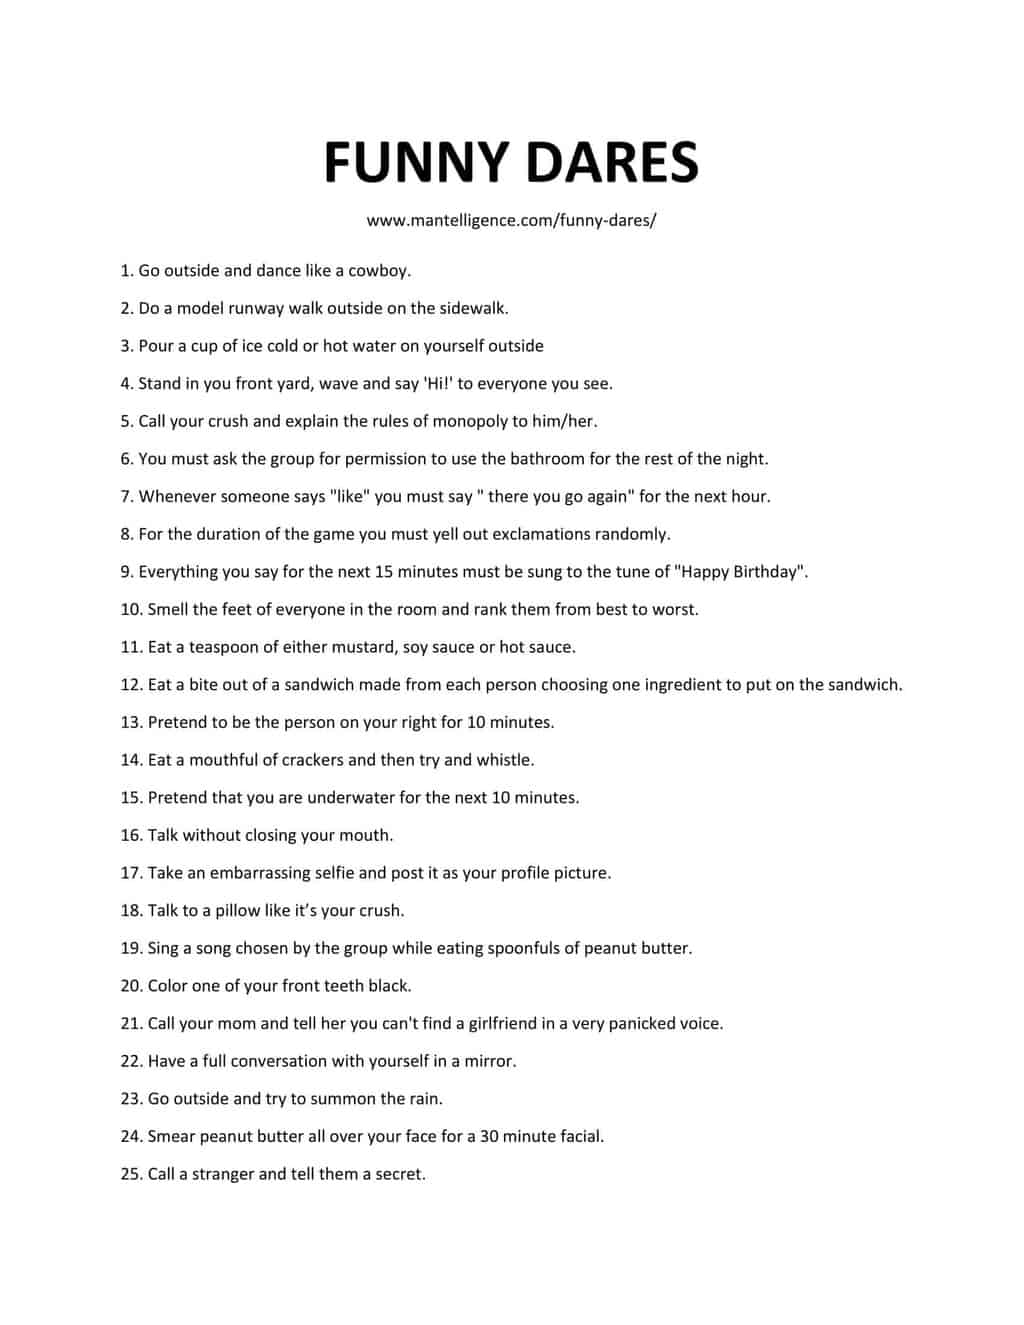 47 Incredibly Funny Dares The Only List You Ll Need